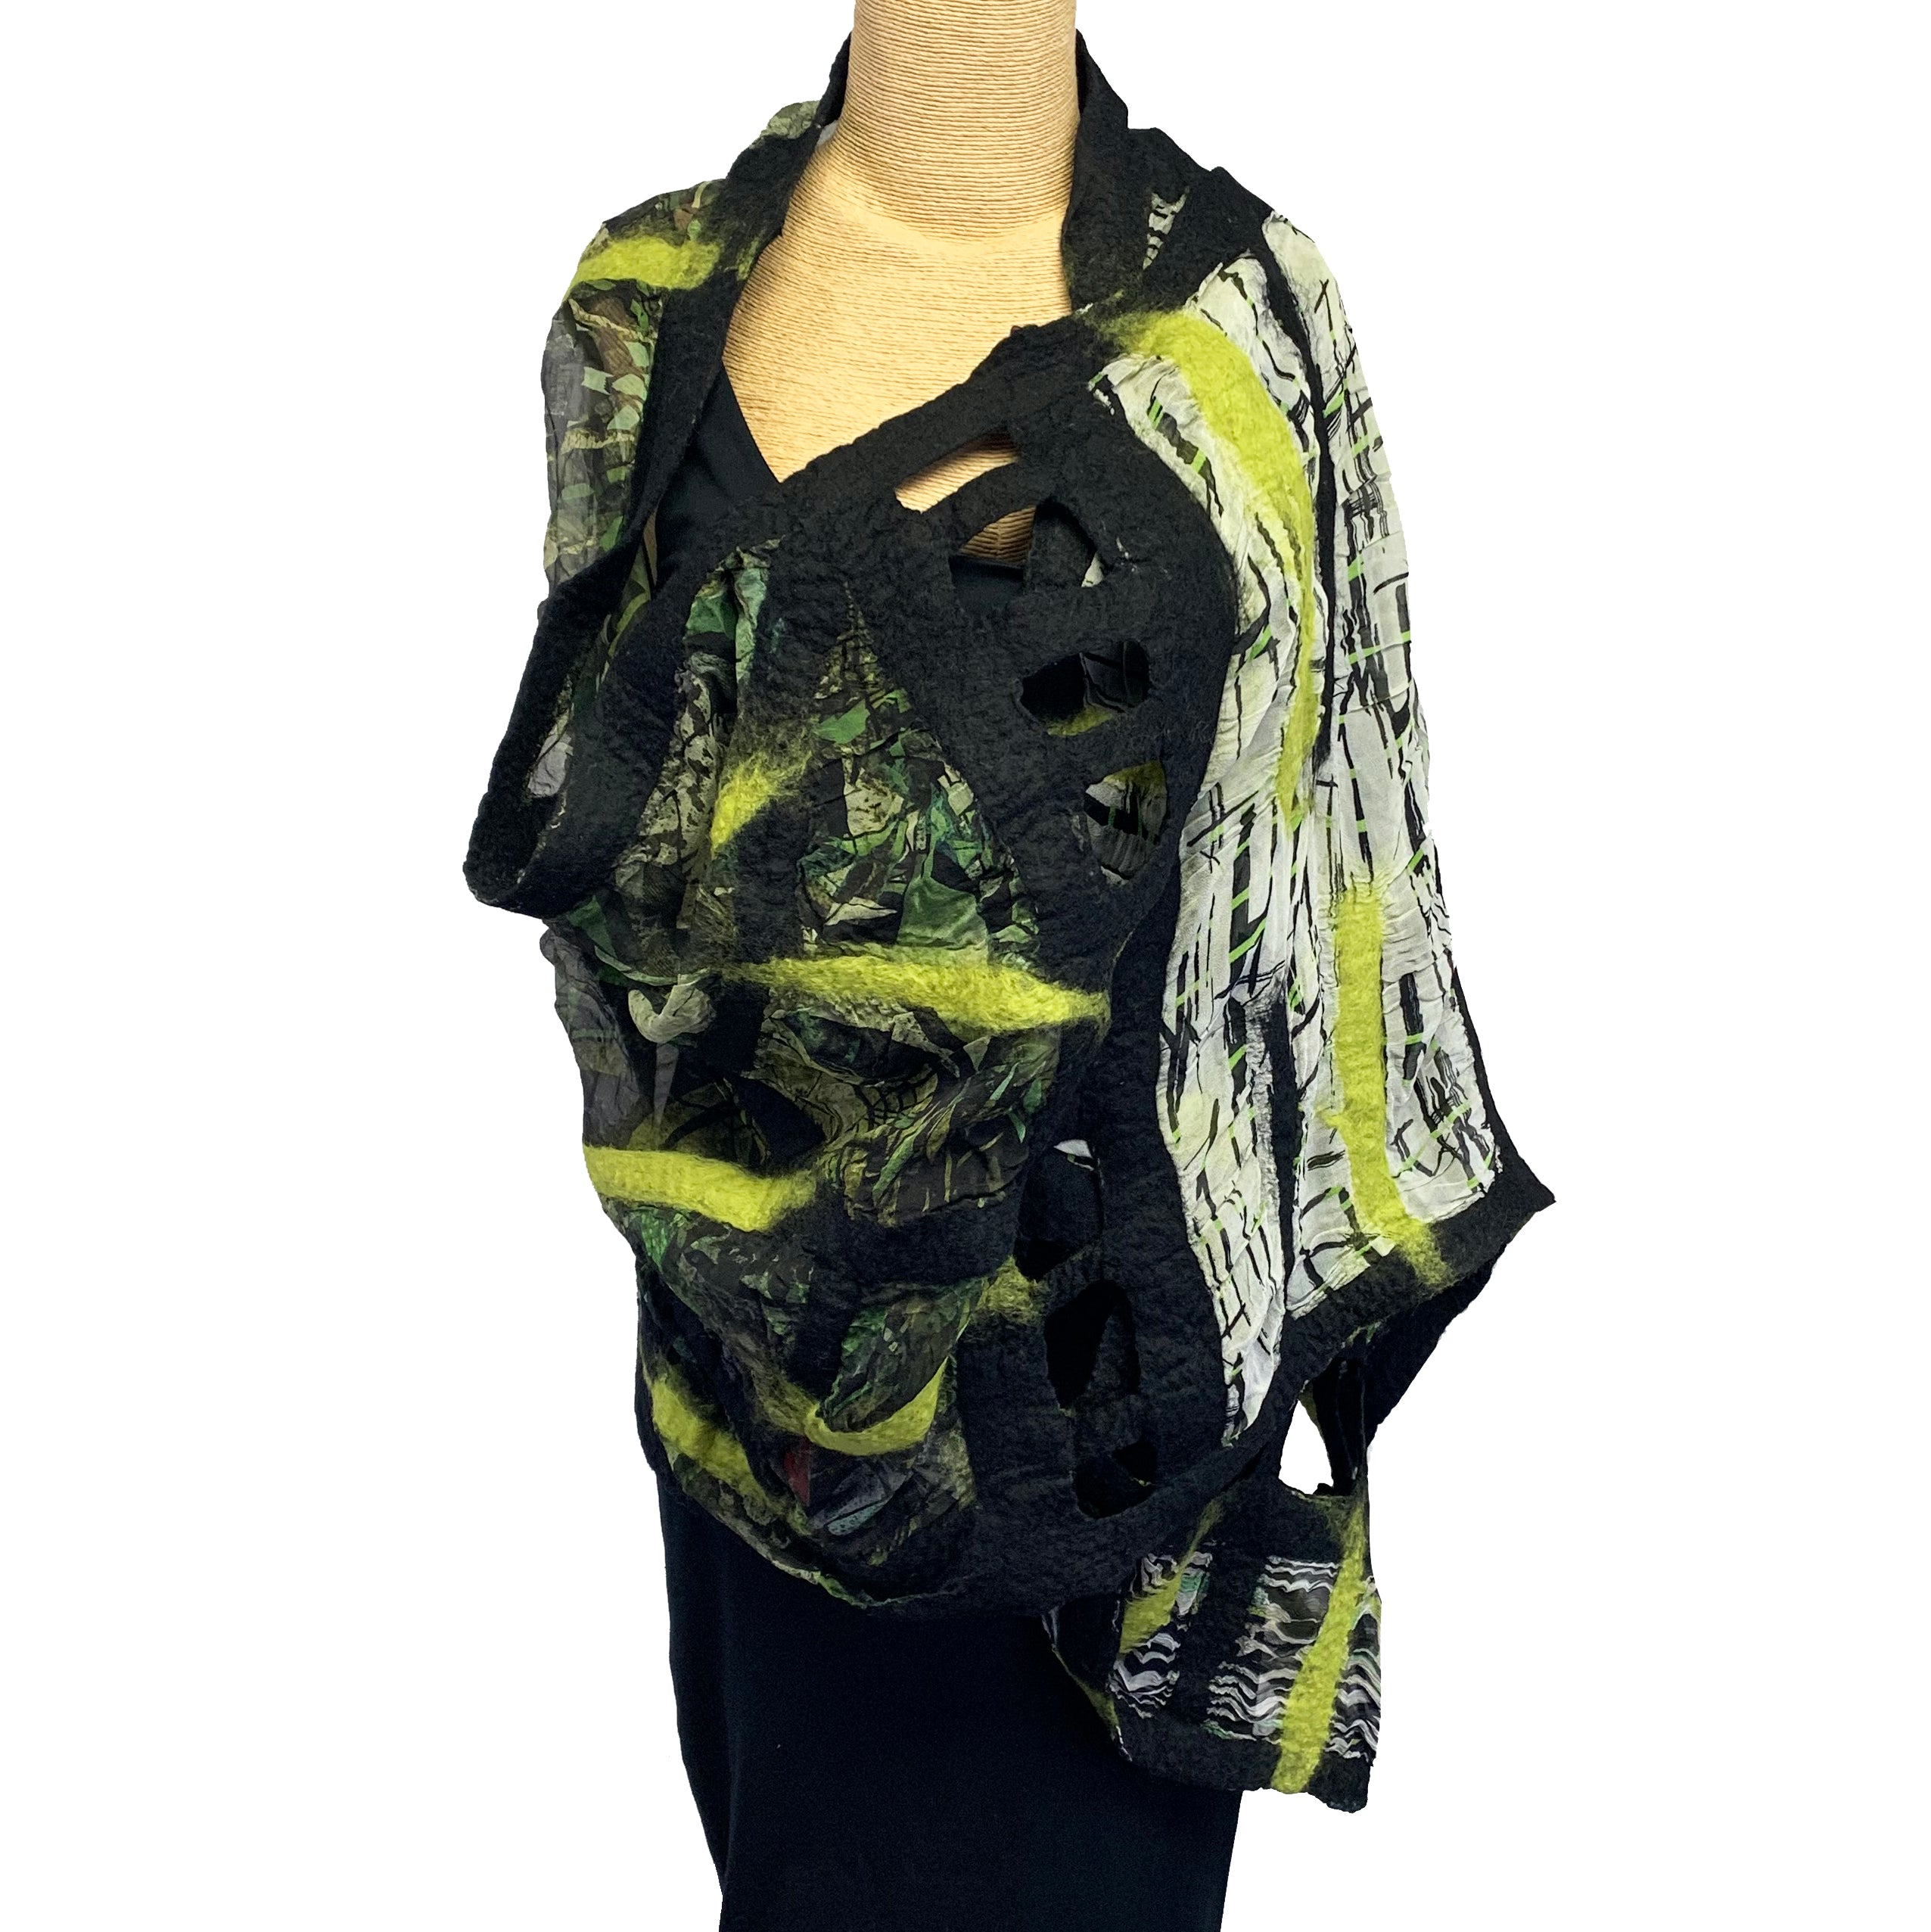 B. Felt Shawl, Green/Black